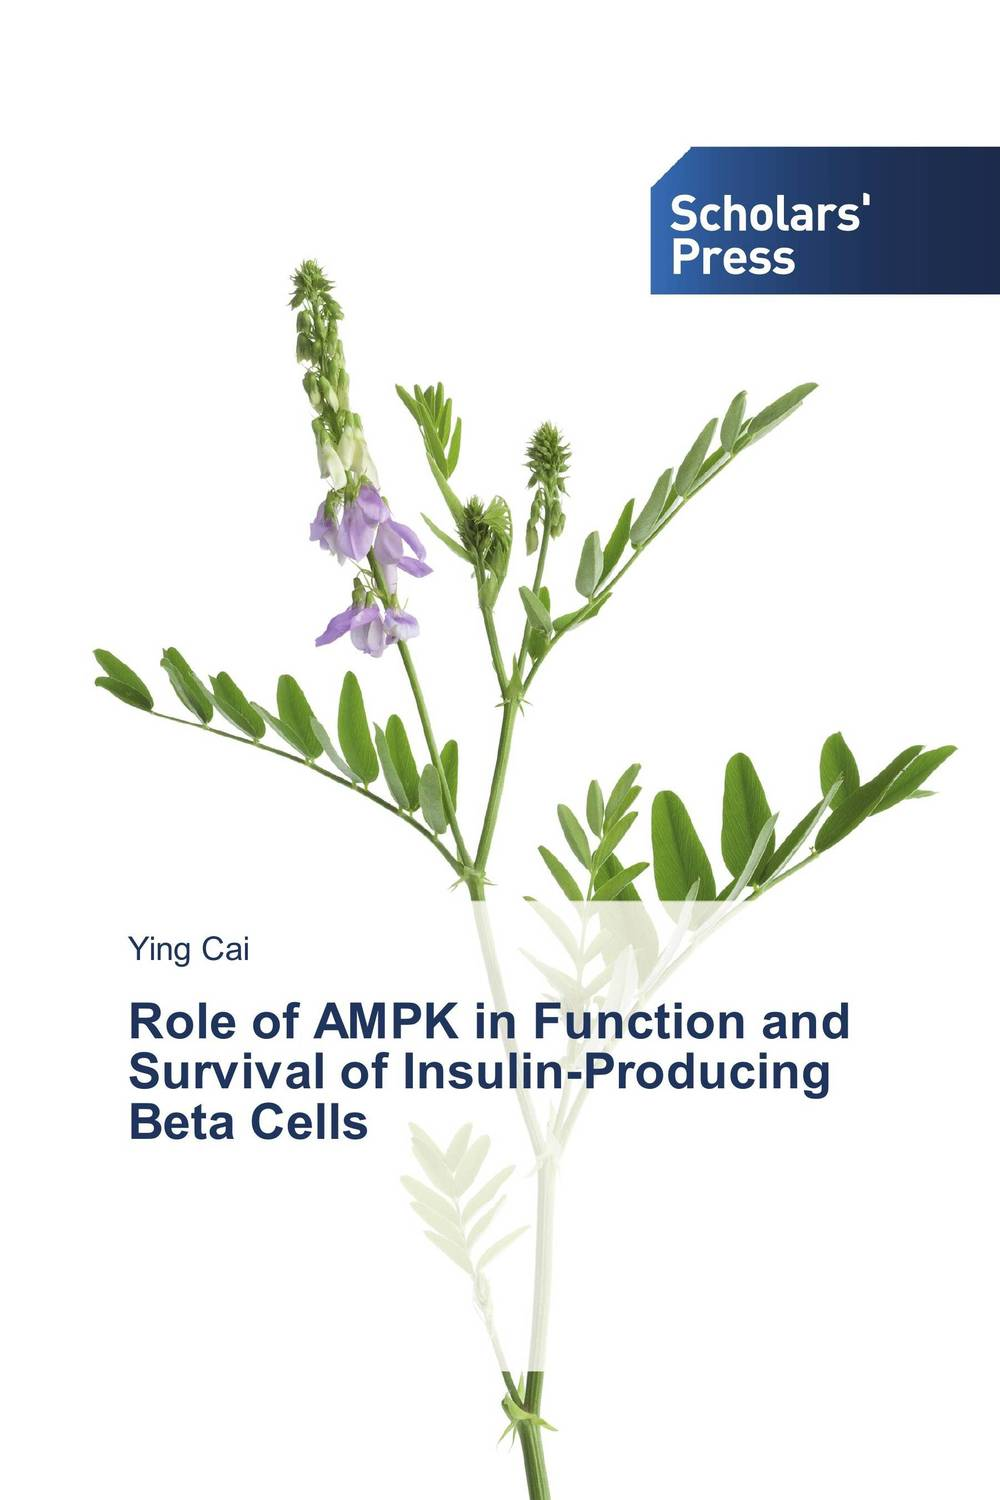 Role of AMPK in Function and Survival of Insulin-Producing Beta Cells amburanjan santra rakesh kumar and c s bal evaluation of brain tumor recurrence role of pet spect mr